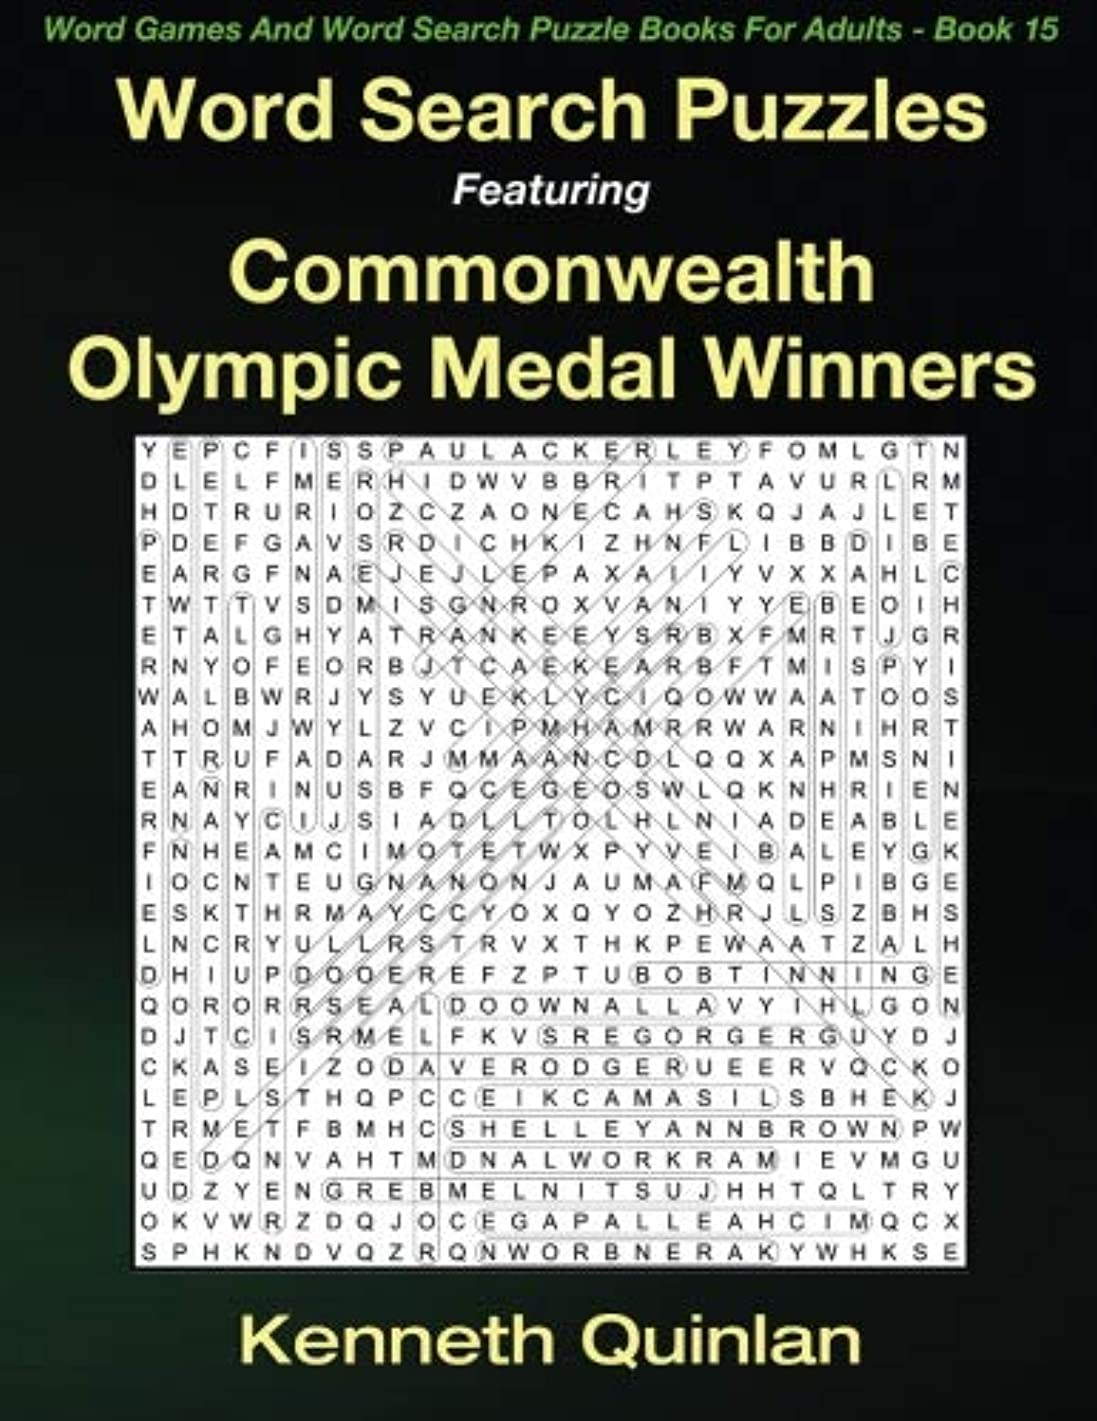 Word Search Puzzles Featuring Commonwealth Olympic Medal Winners (Word Games And Word Search Puzzle Books For Adults) (Volume 15)